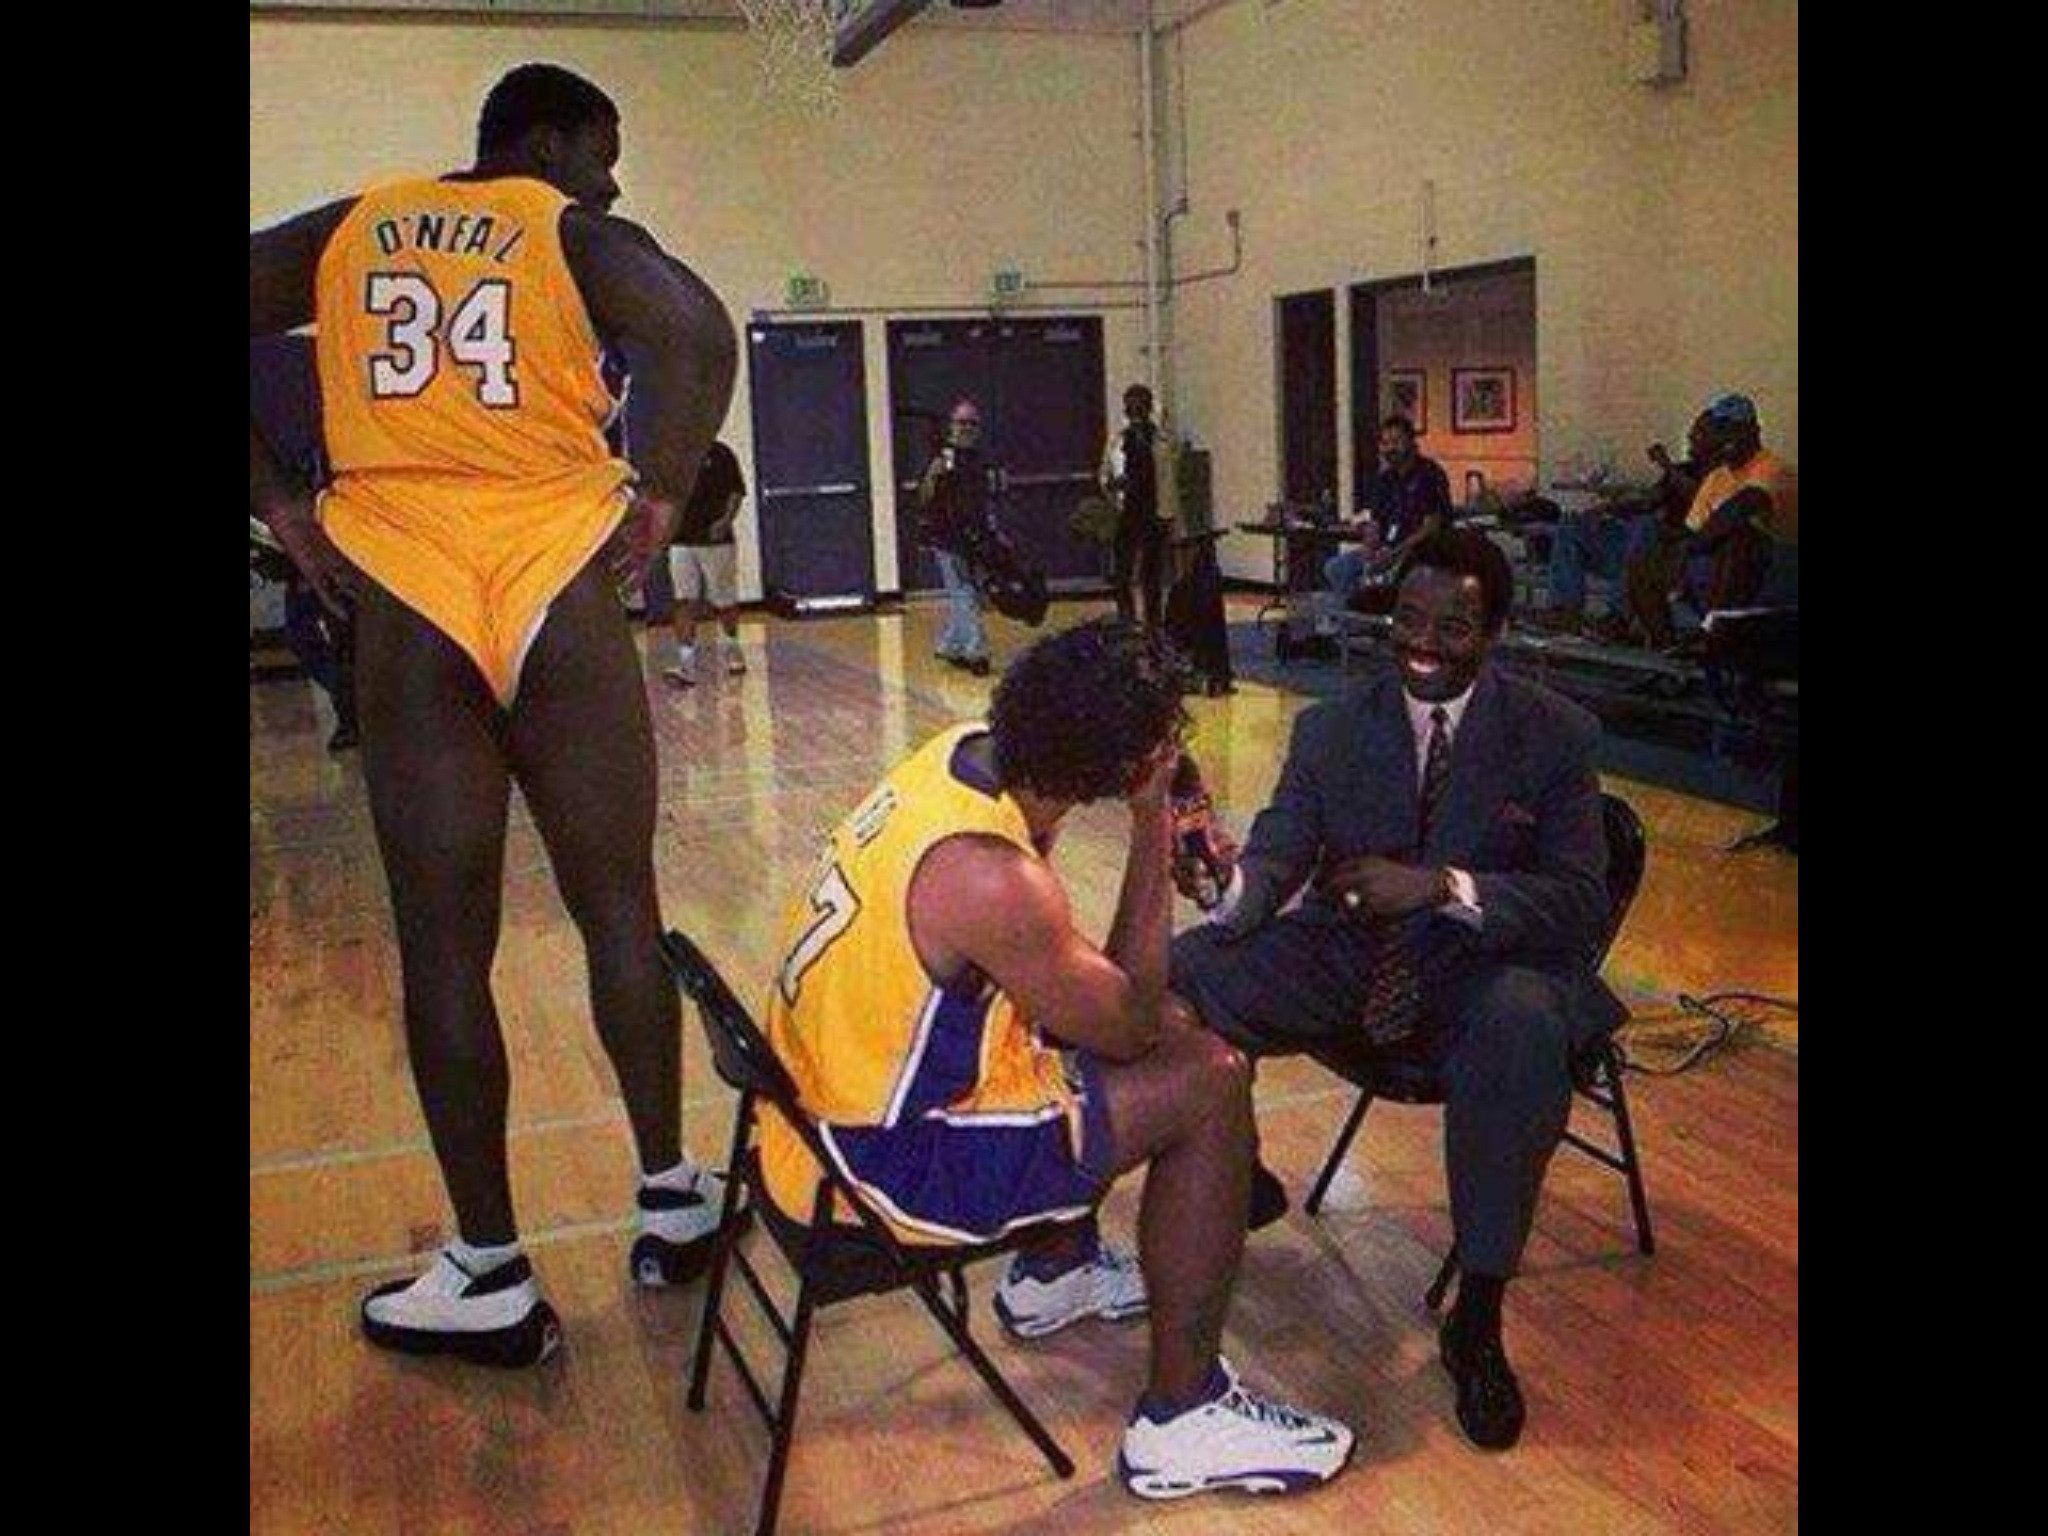 Kyrie Irving Wallpaper 2013 Hd Phil Jackson Shaquille O Neal Once Showed Up To Lakers